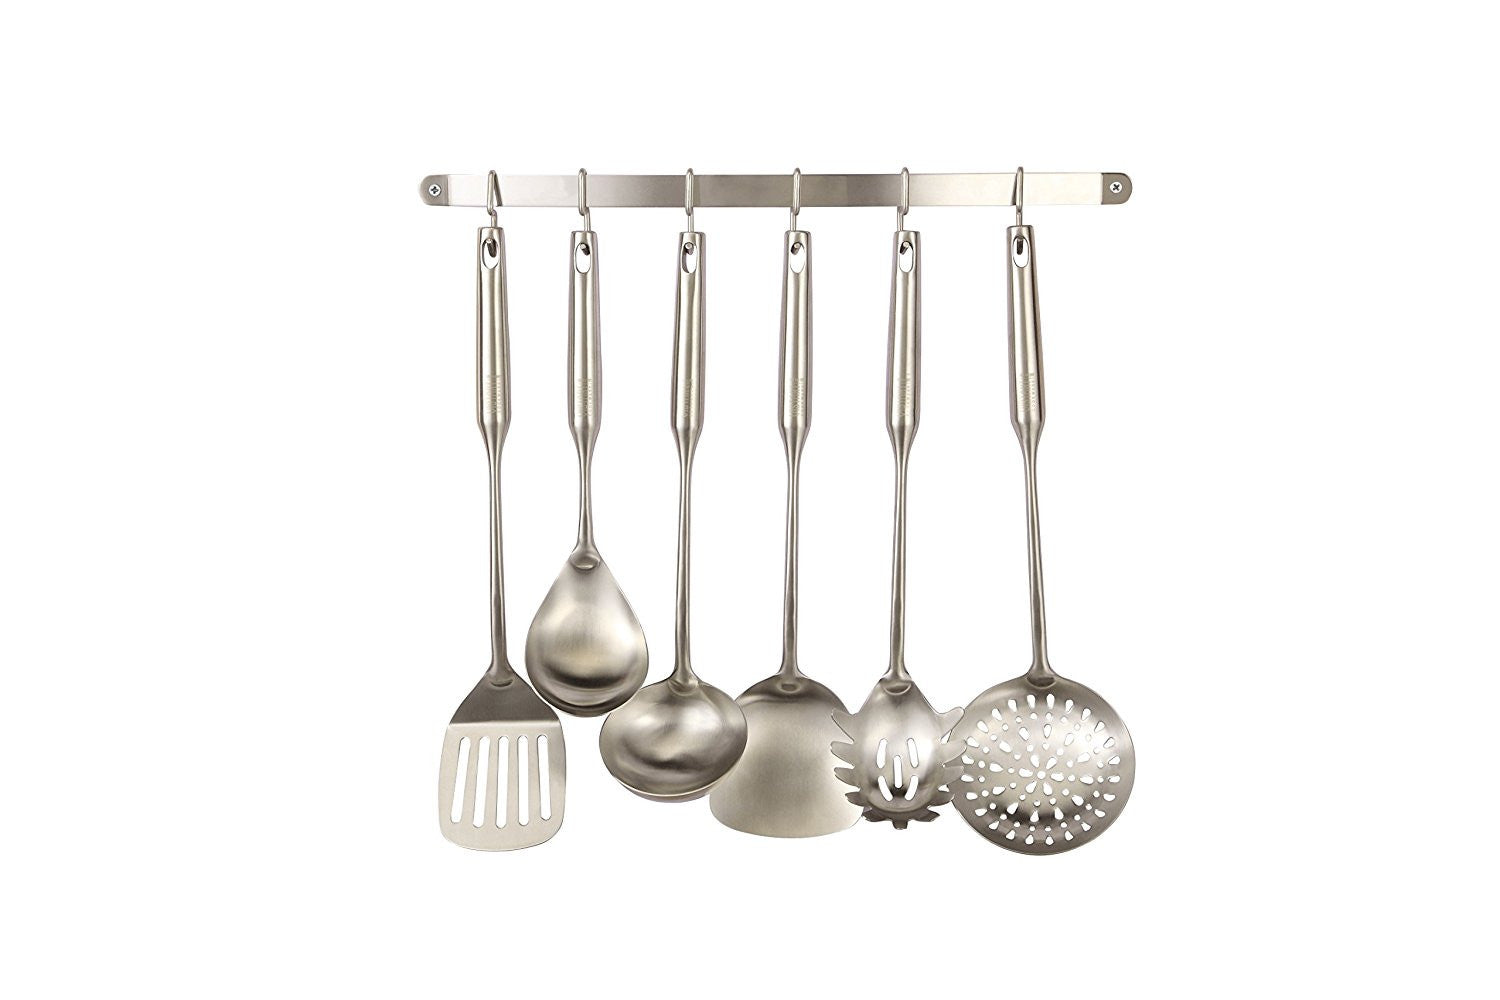 Pro Chef Kitchen Tools Stainless Steel Utensil Hanging